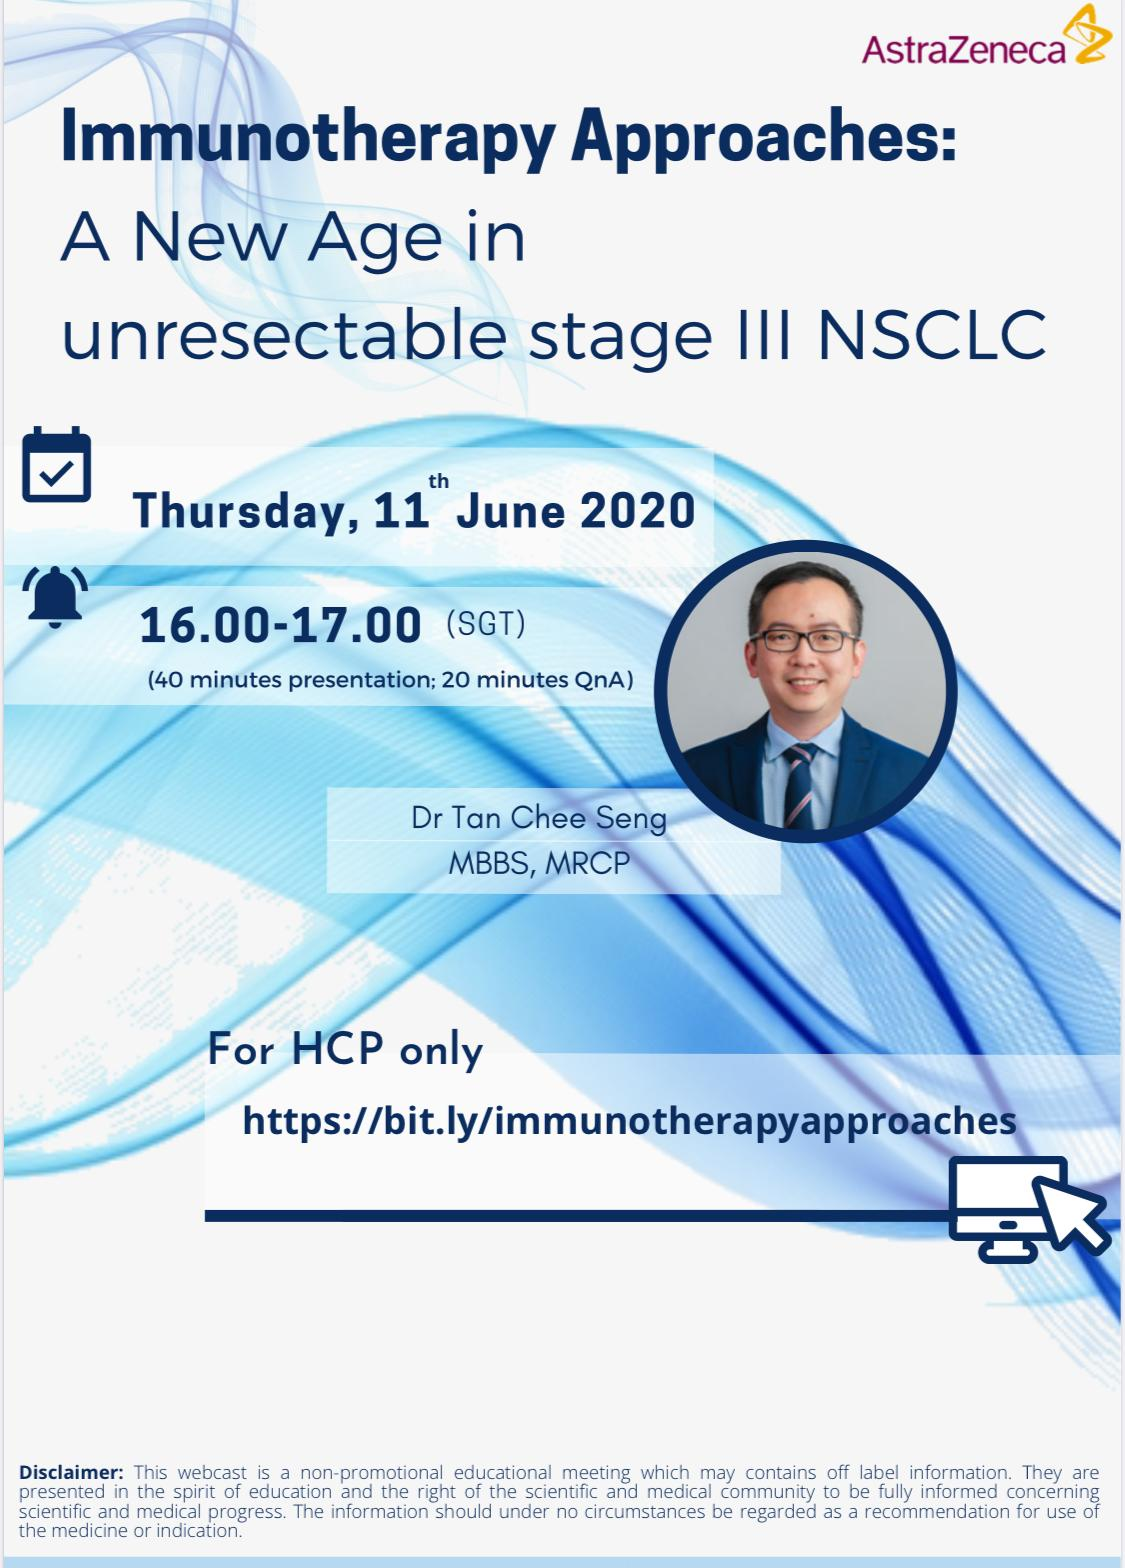 A New Age in unresectable stage III NSCLC (Non-Small-Cell Lung Carcinoma)